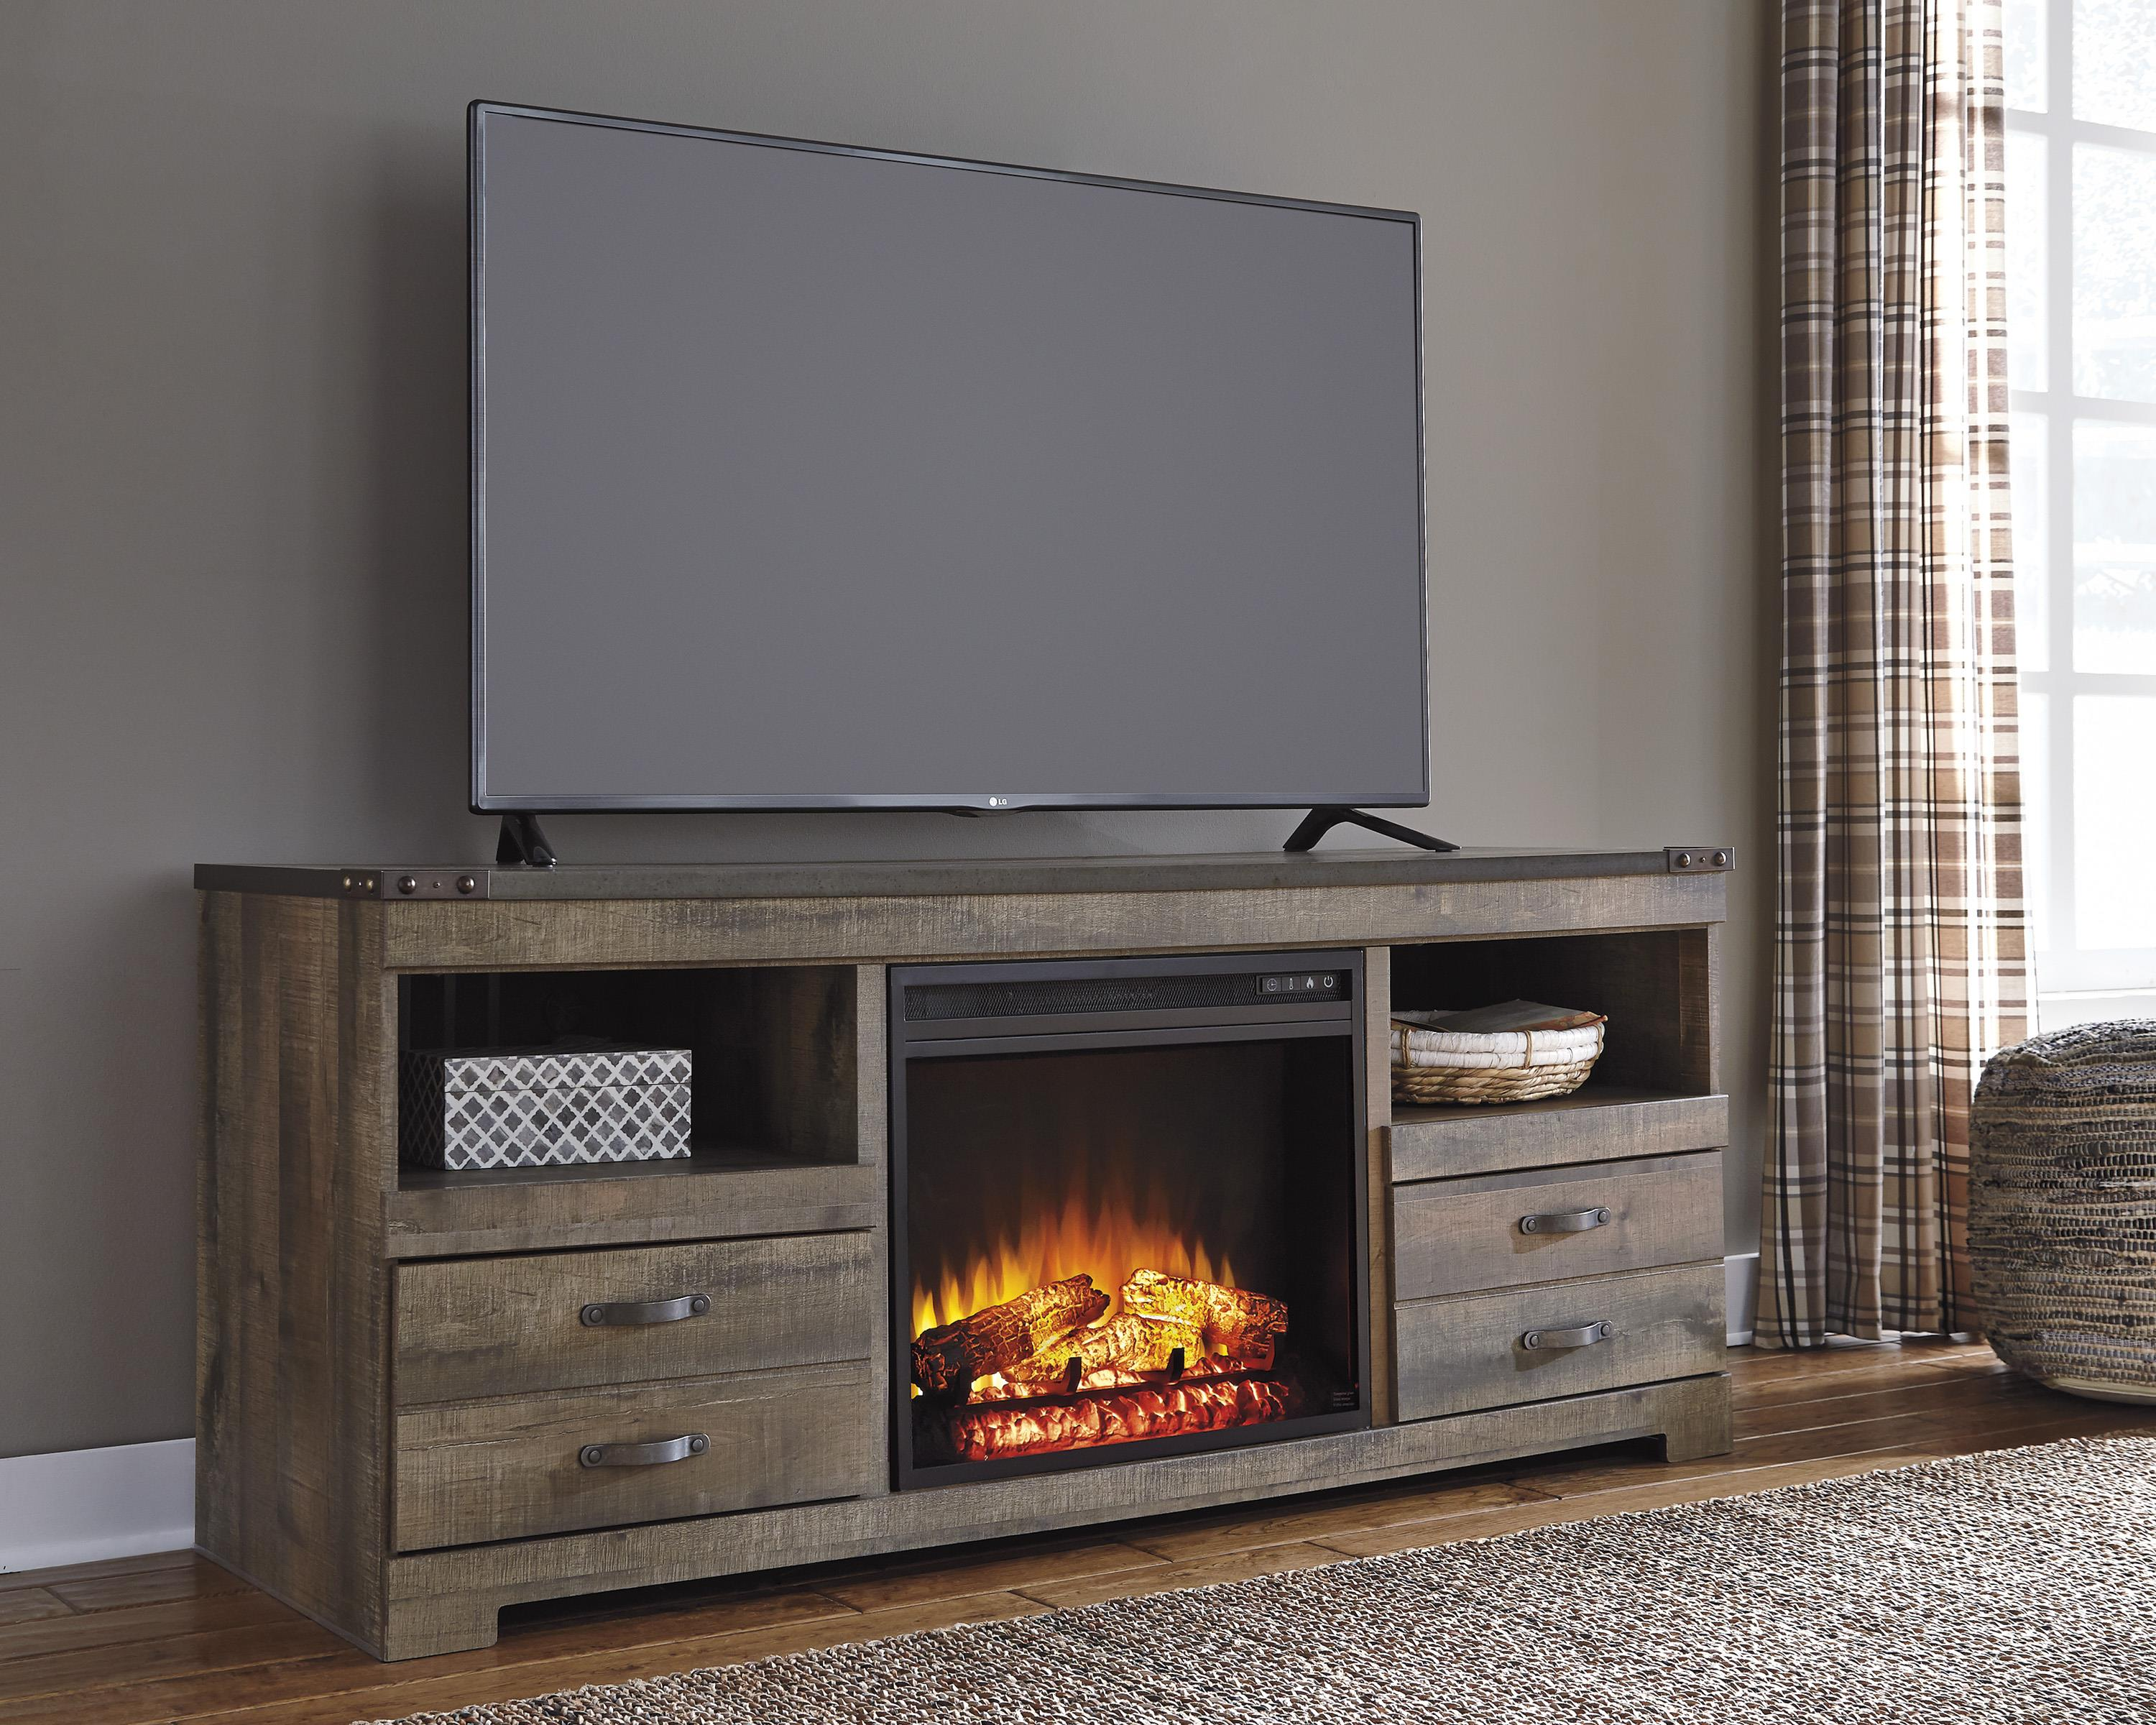 Signature Design by Ashley Trinell Rustic TV Stand